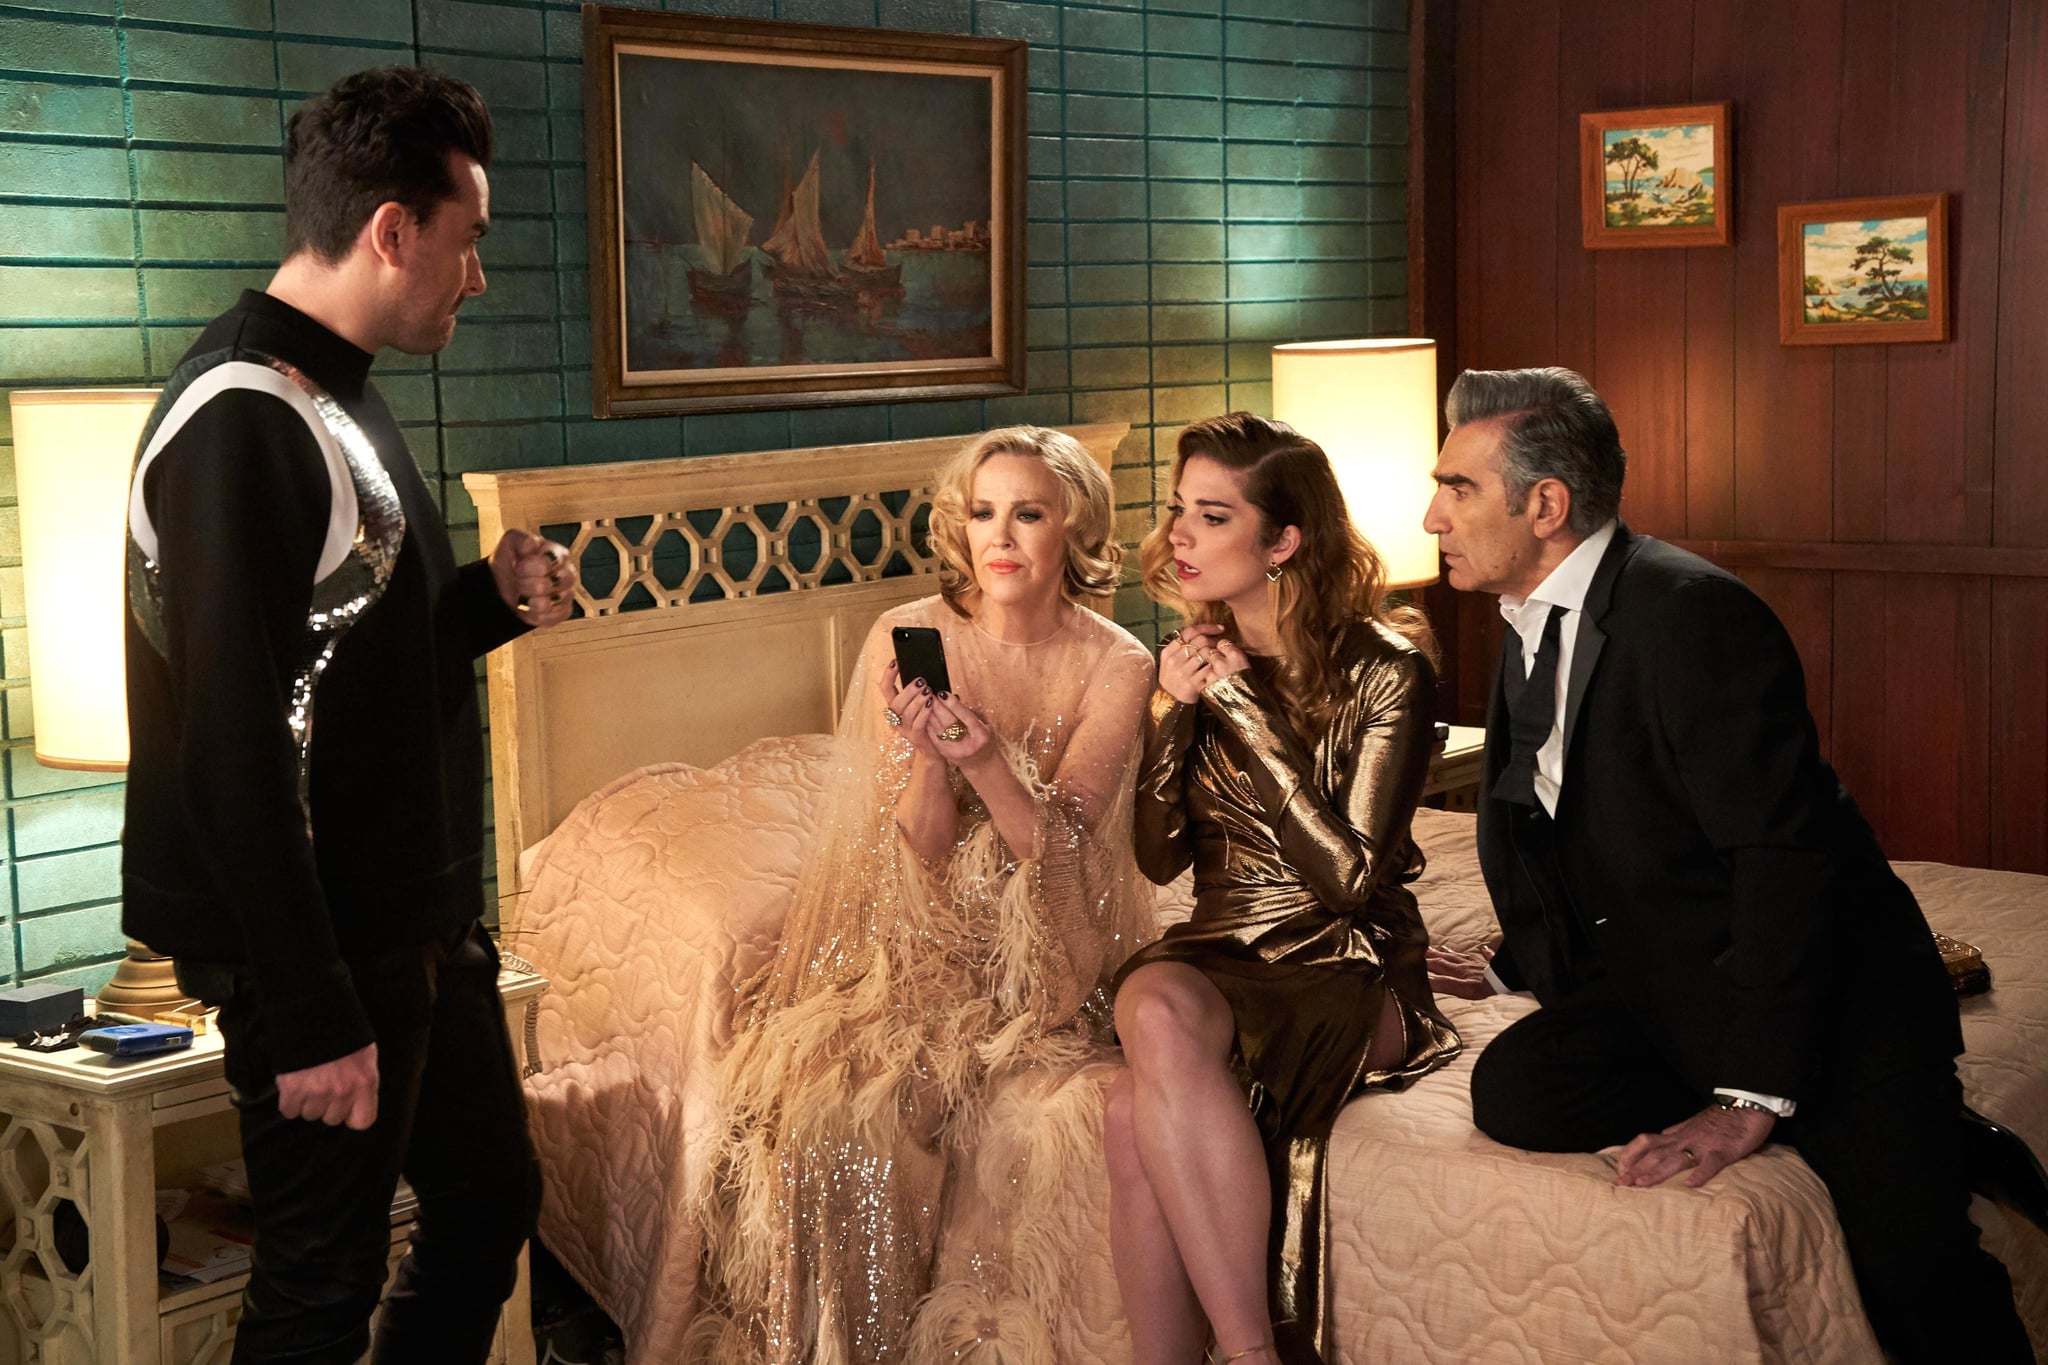 SCHITT'S CREEK, from left: Daniel Levy, Catherine O'Hara, Annie Murphy, Eugene Levy, 'The Premiere', (Season 6, ep. 605, aired in the US on Feb. 4, 2020). photo: CBC / courtesy Everett Collection